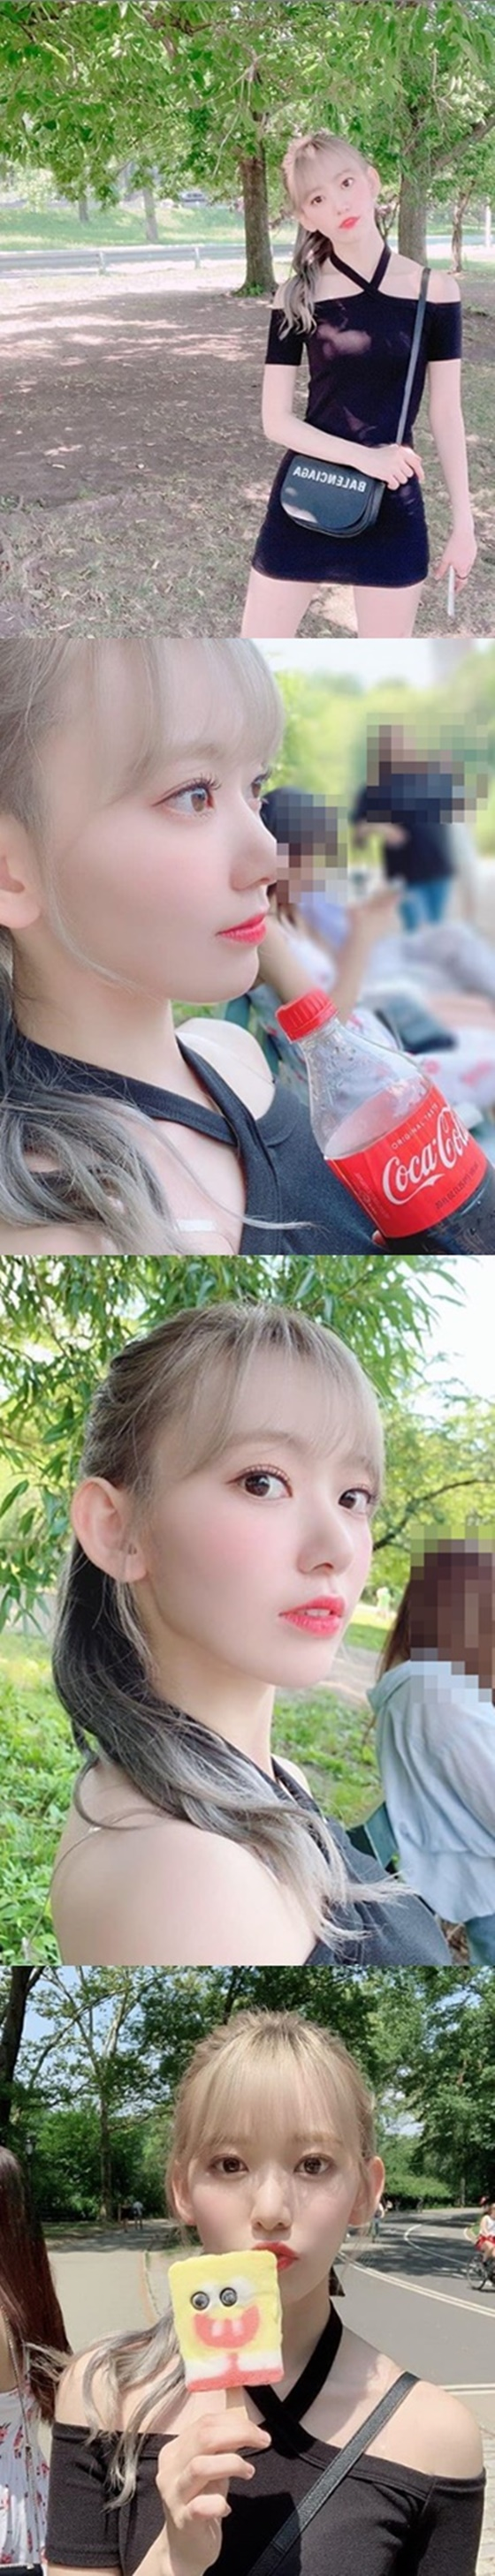 <p>This to netizens beautiful, lovely, too Mana Sakura, freshly Beautiful looks as different reactions came up.</p>